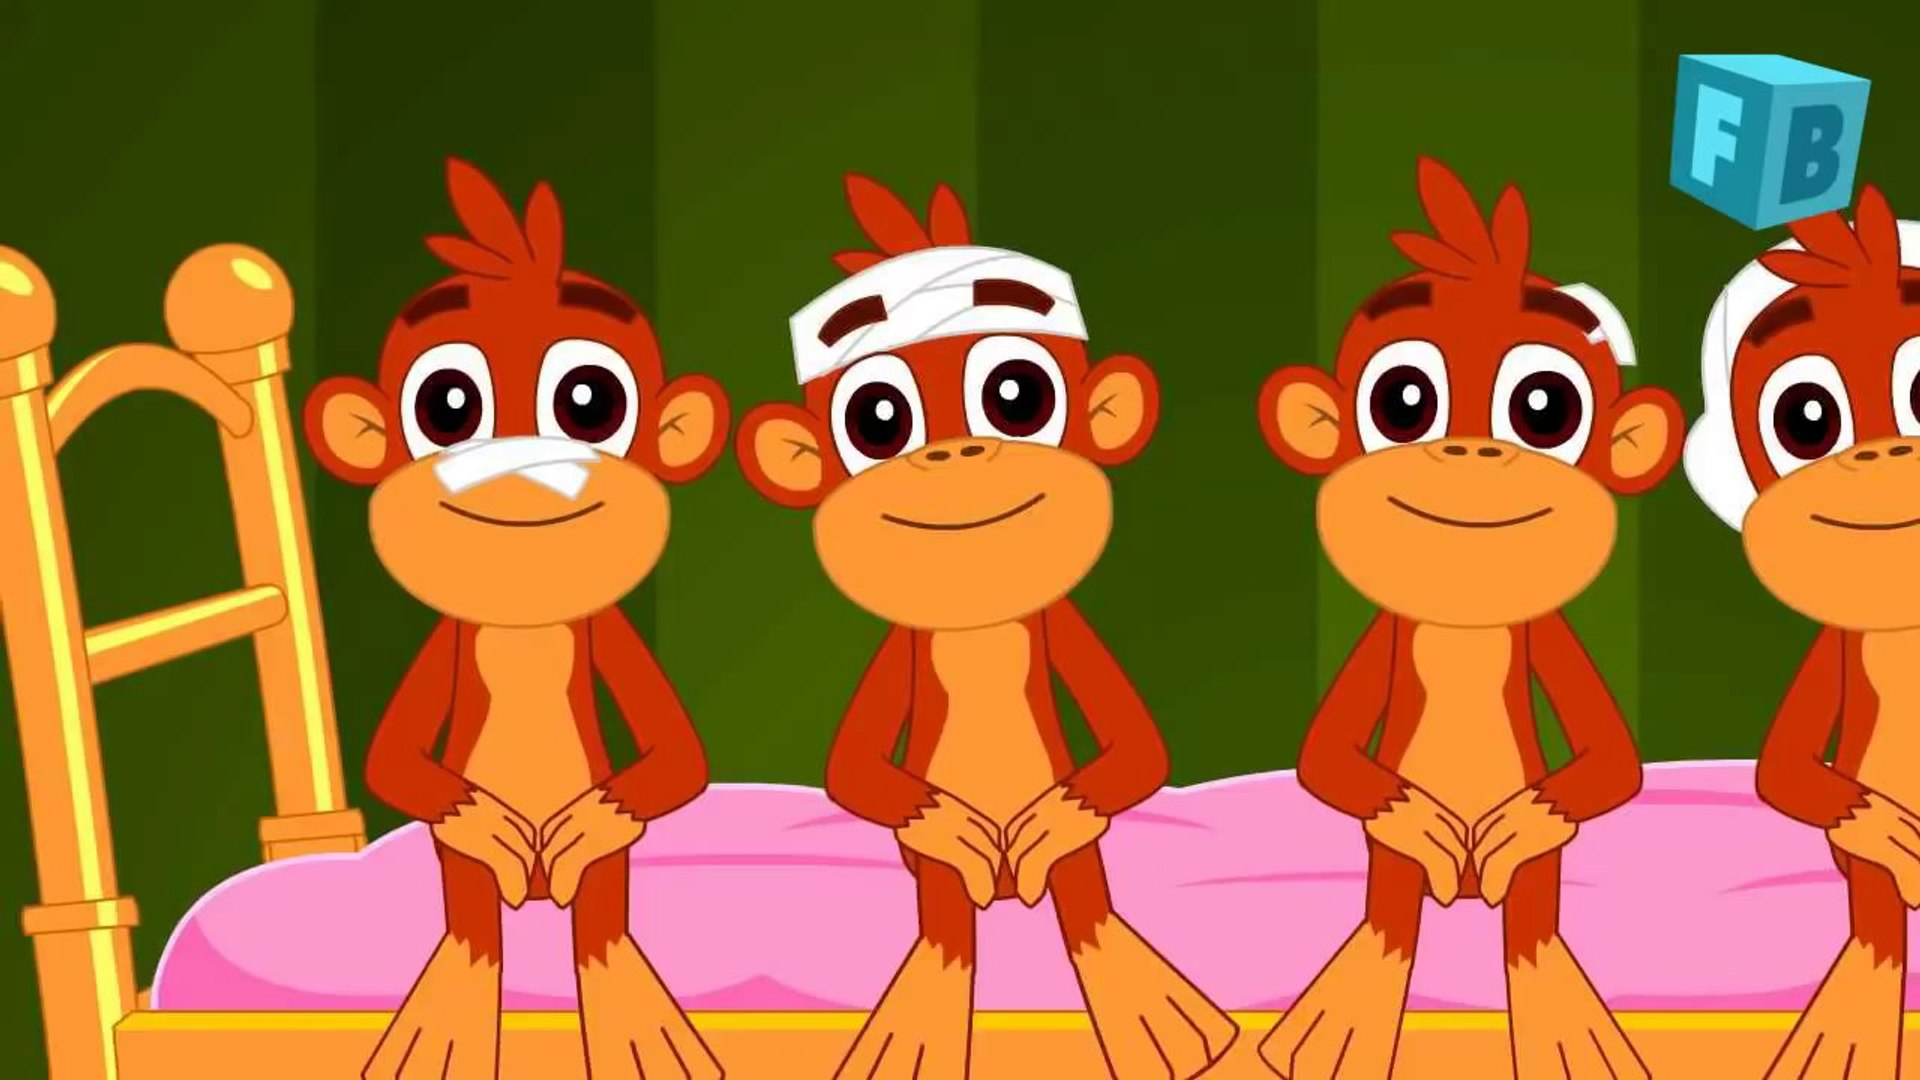 Five Little Monkeys Jumping On The Bed Children Nursery Rhyme Songs Video Dailymotion